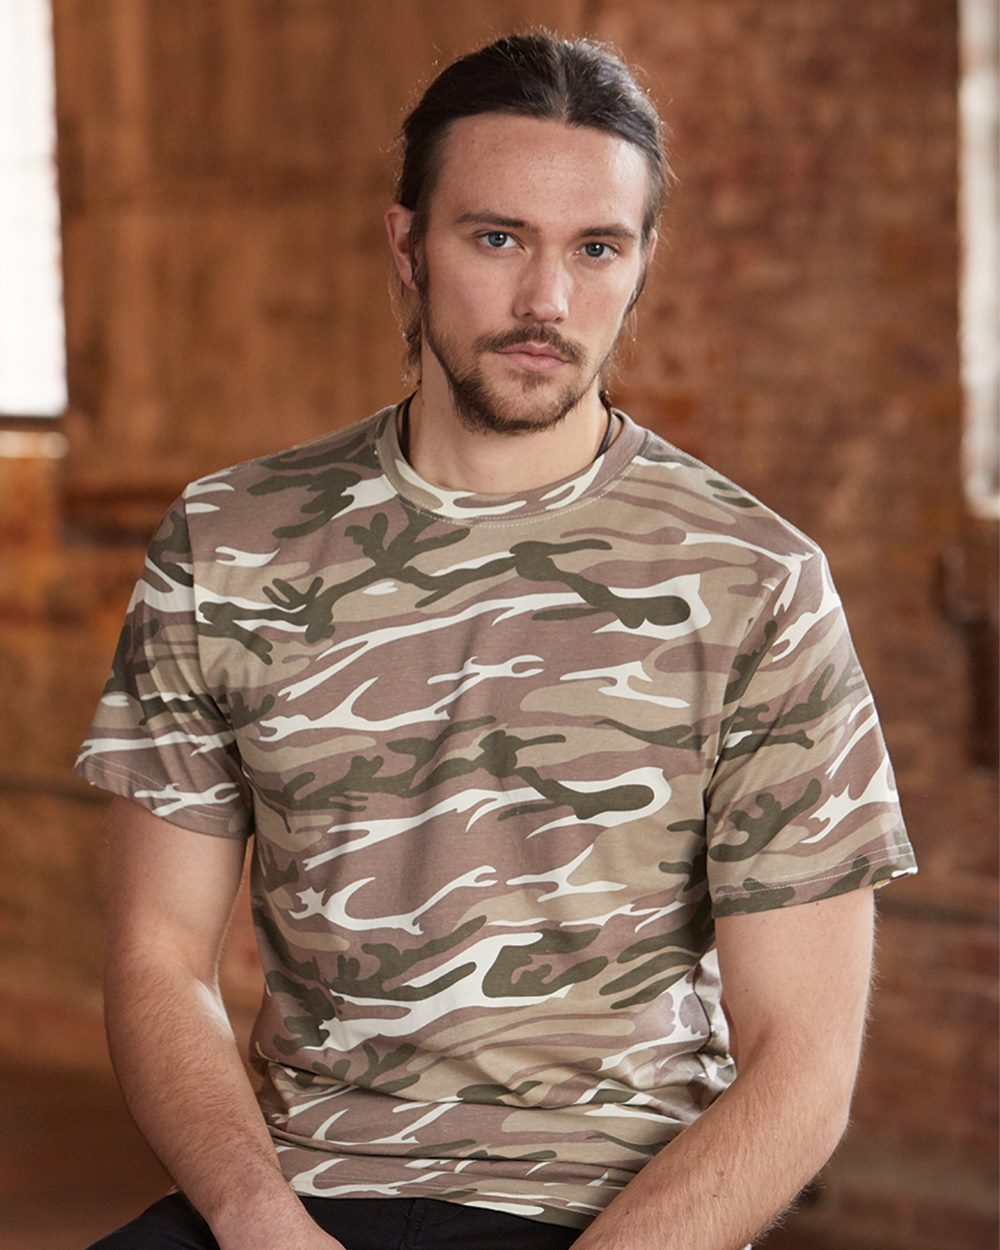 Anvil Heavyweight Camouflage Camo Tee T-shirt Green or Sand